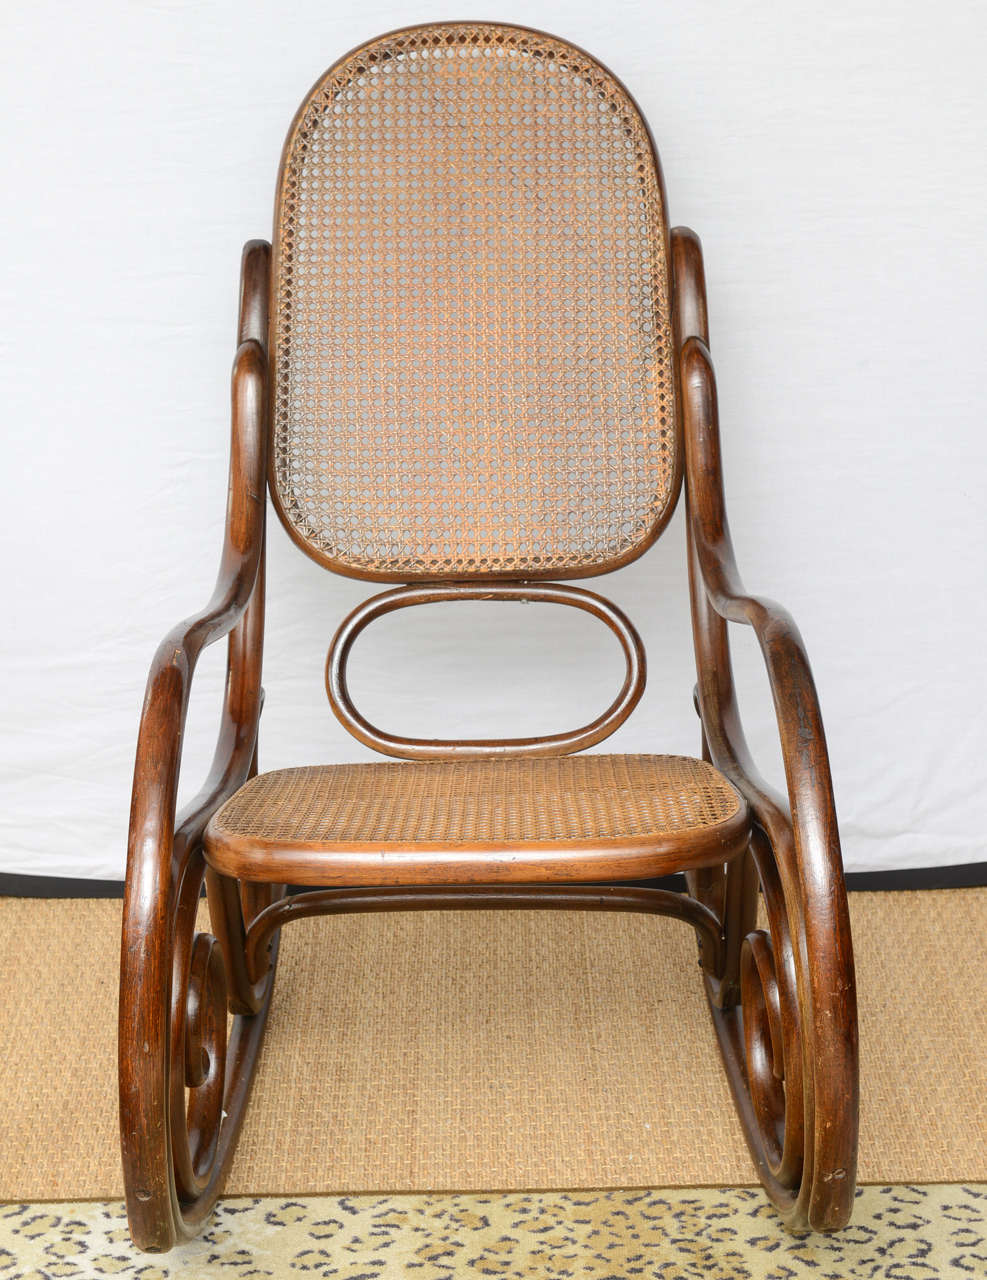 Bentwood rocking chair value - Vintage Thonet Bentwood Rocking Chair 3 Vintage Thonet Bentwood Rocking Chair At 1stdibs